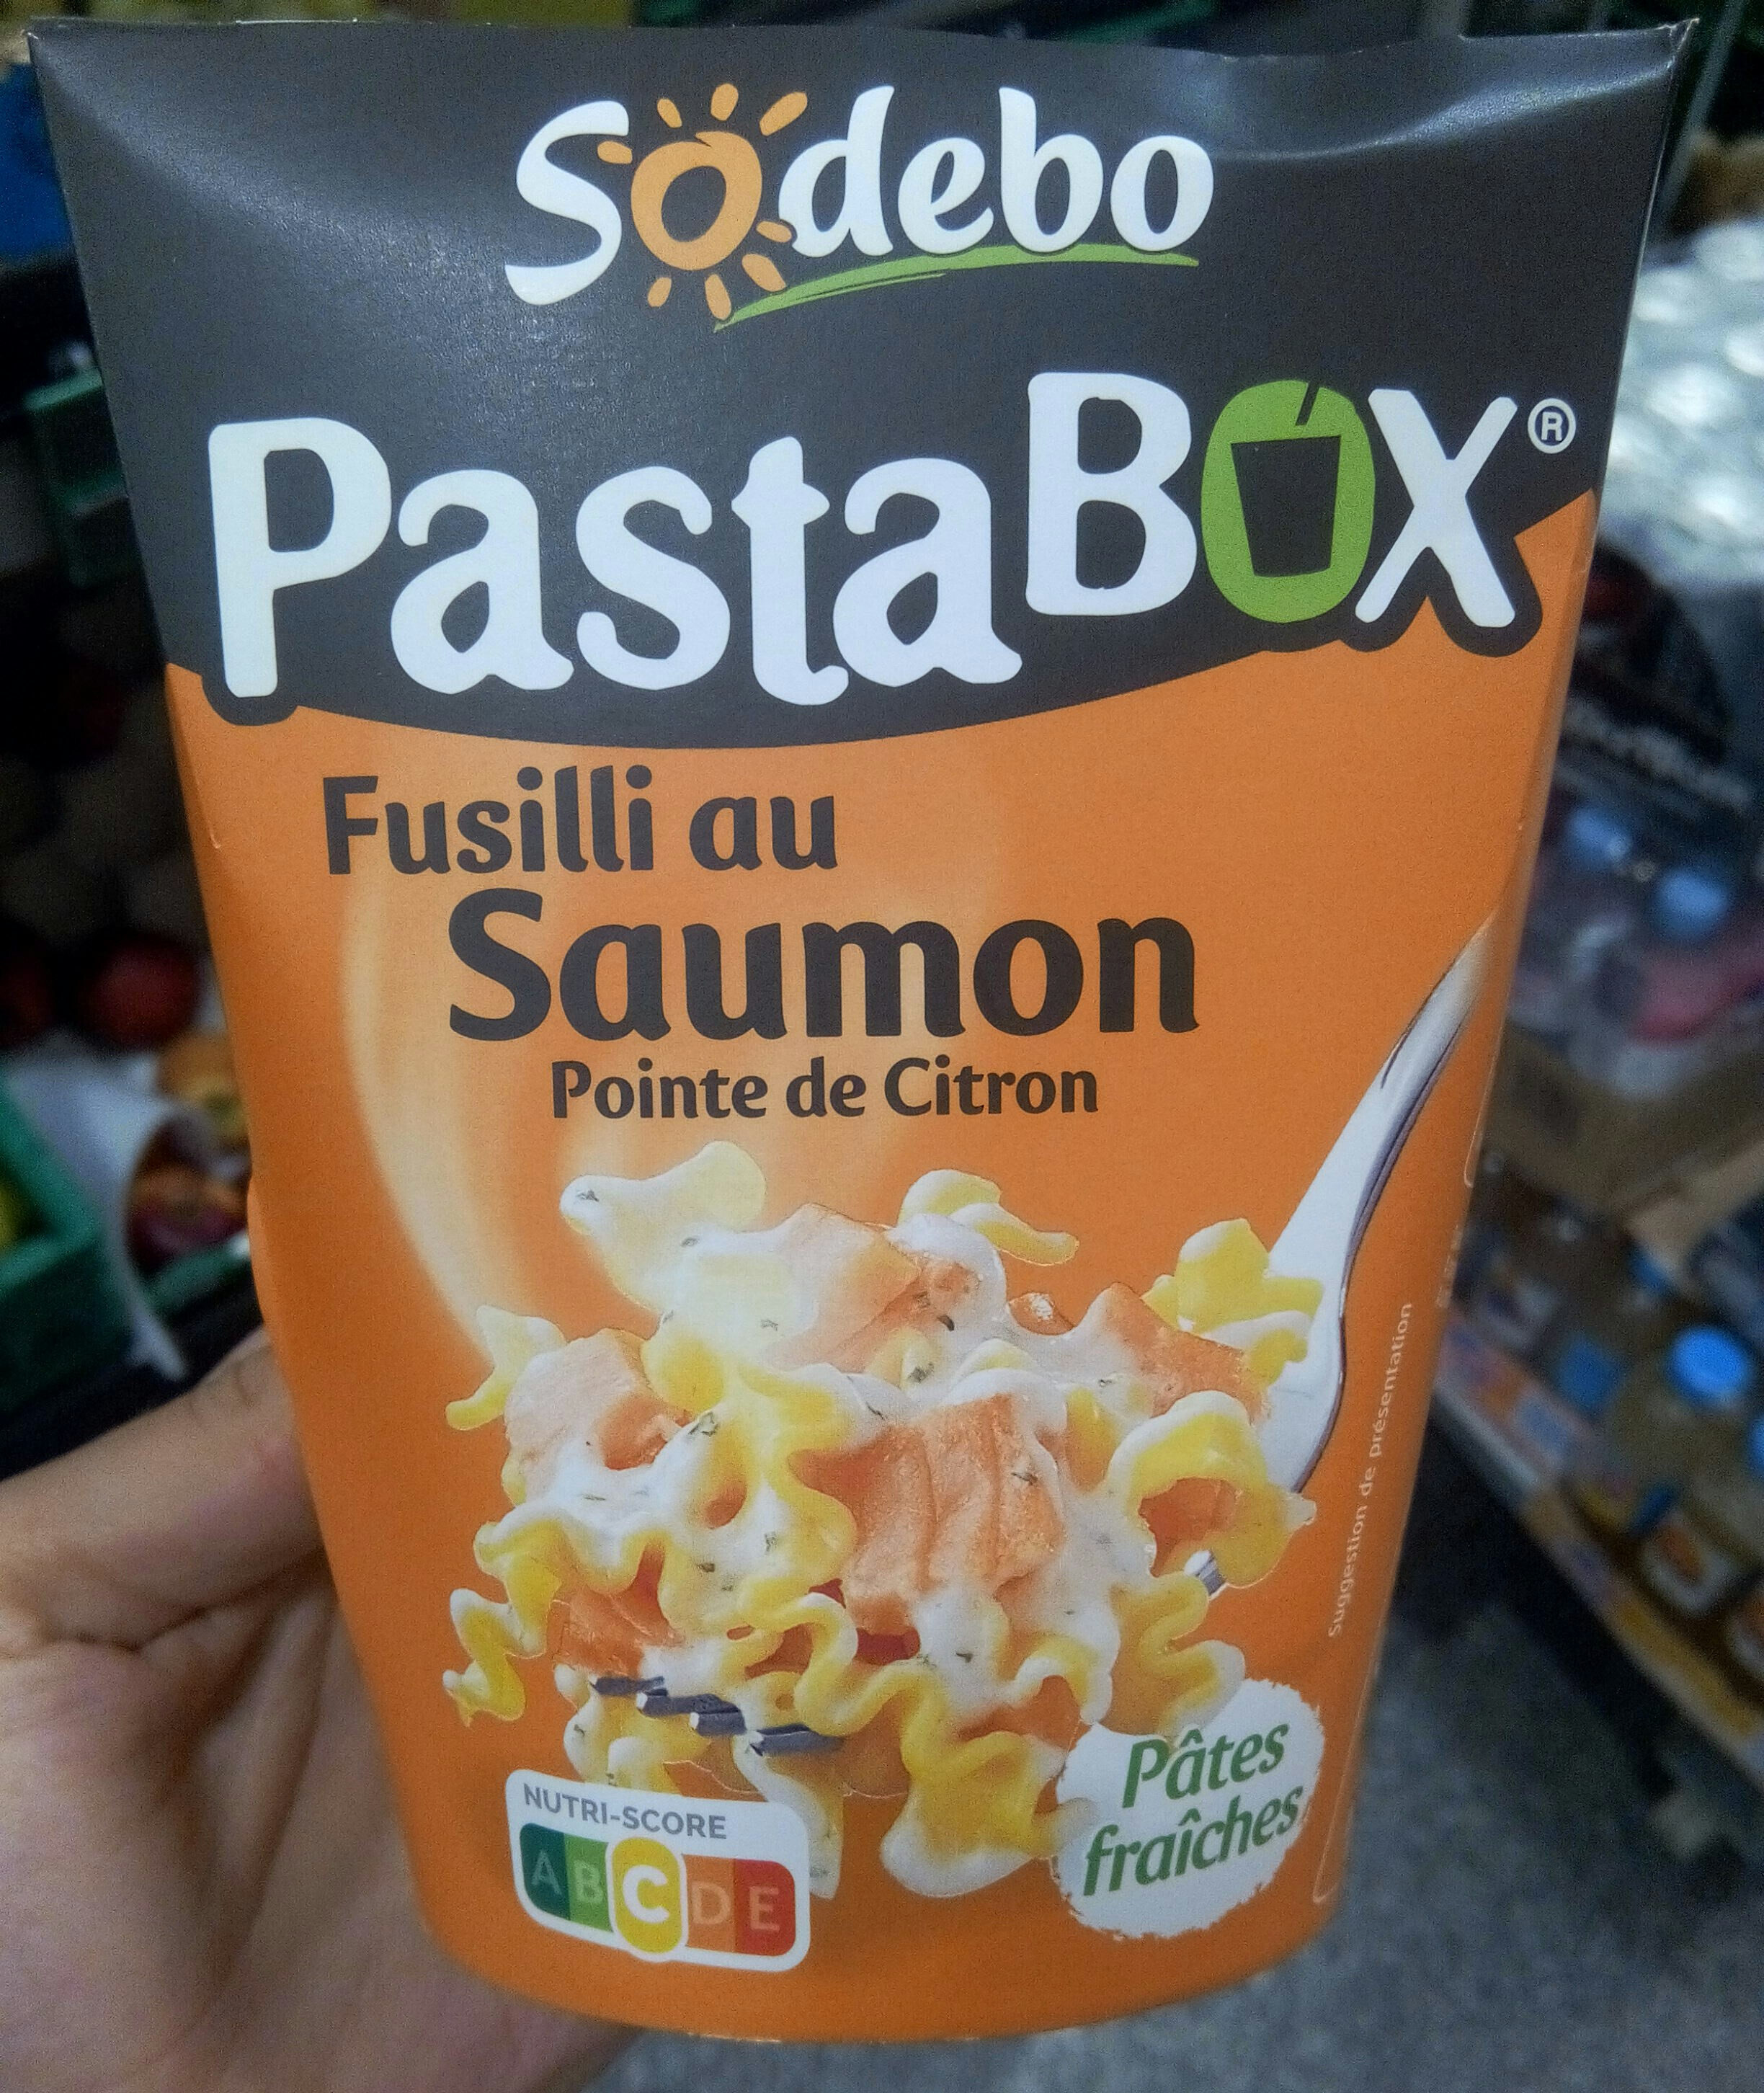 PastaBox - Fusilli au Saumon et Pointe de citron - Product - fr